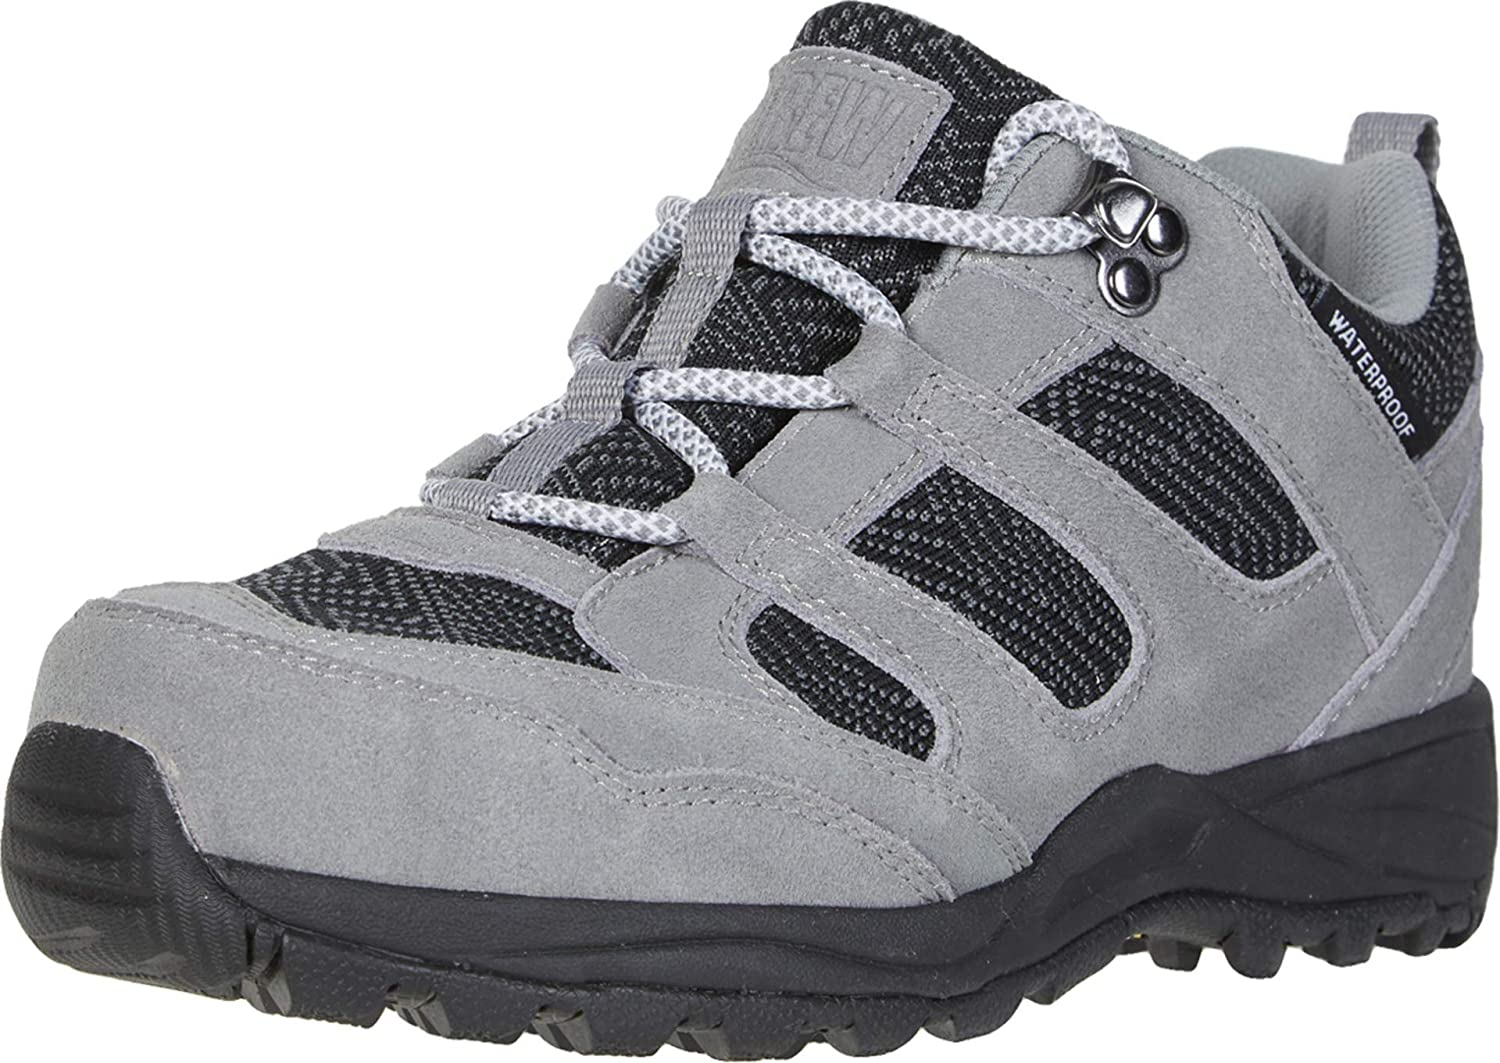 Drew Woman Snowy 10190 Grey/Suede/Leather Leather/Mesh 8.5 X-Wide (2E) US